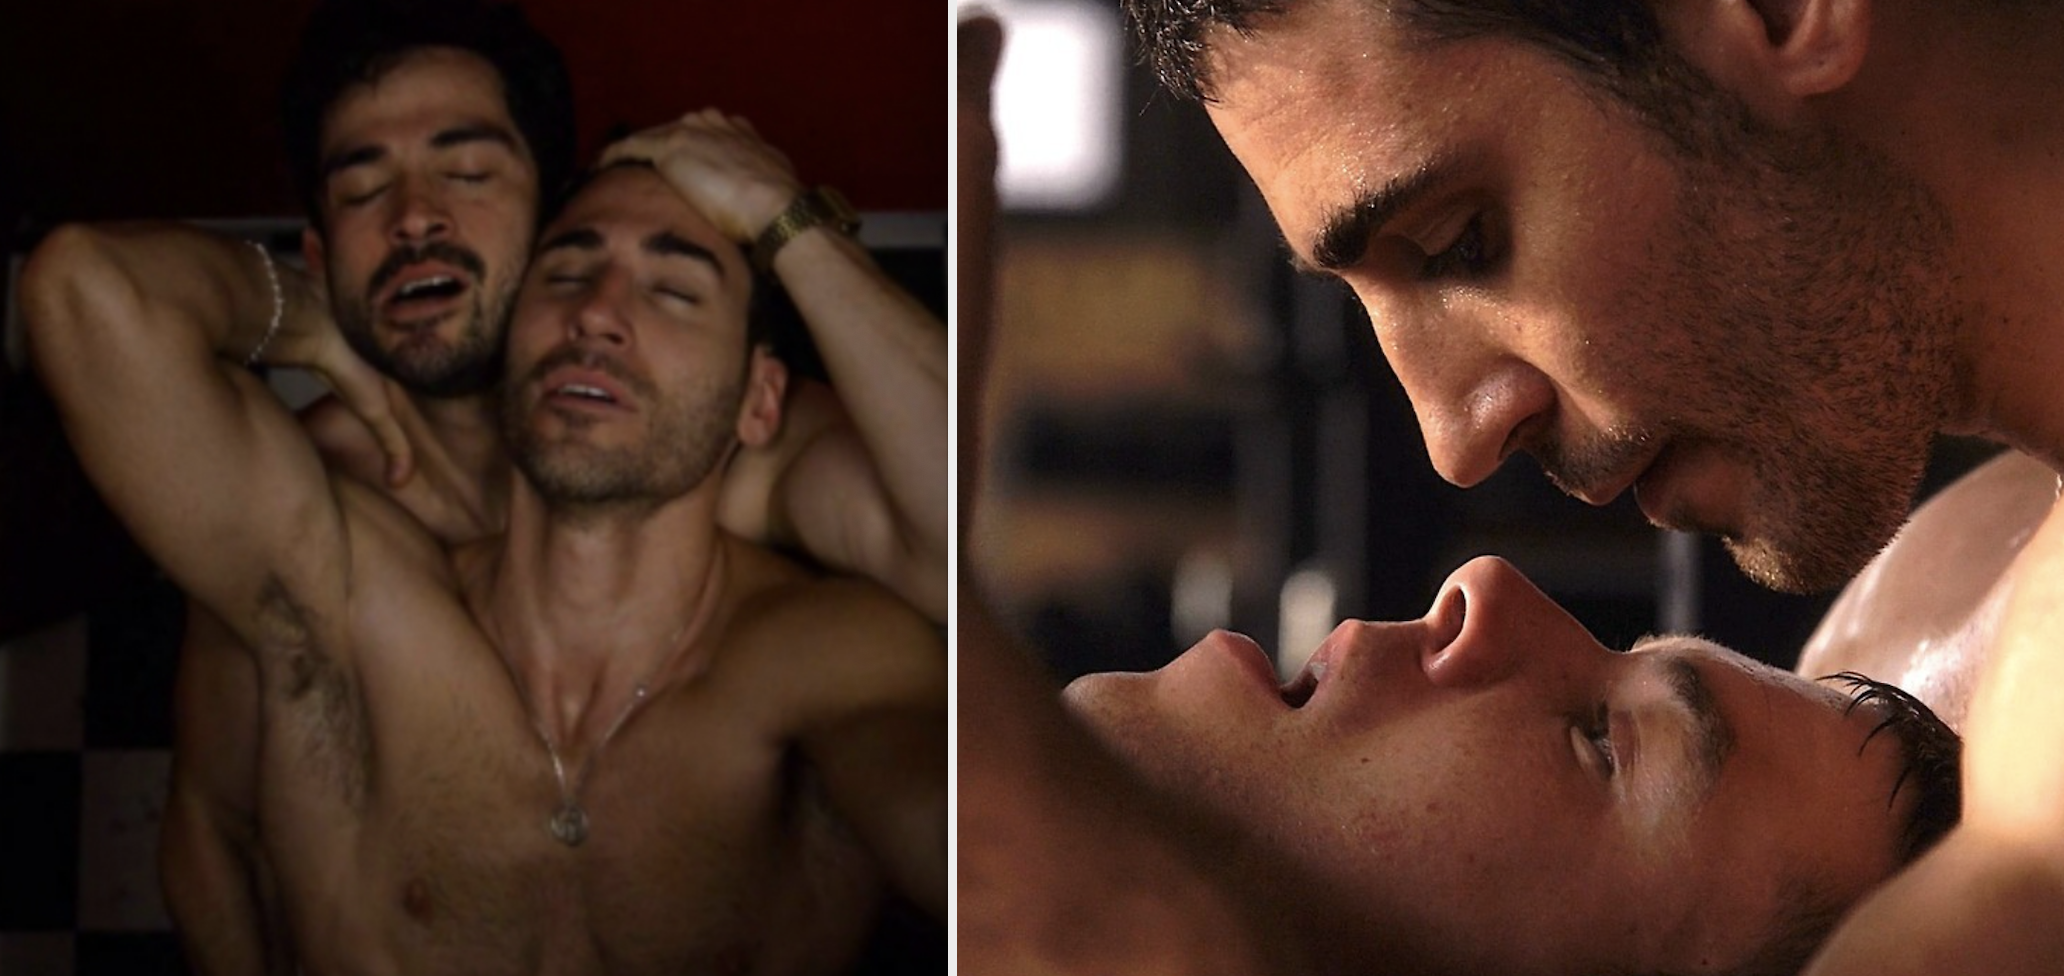 """Two male characters from Netflix's """"Sense8"""" holding each other, about to kiss"""